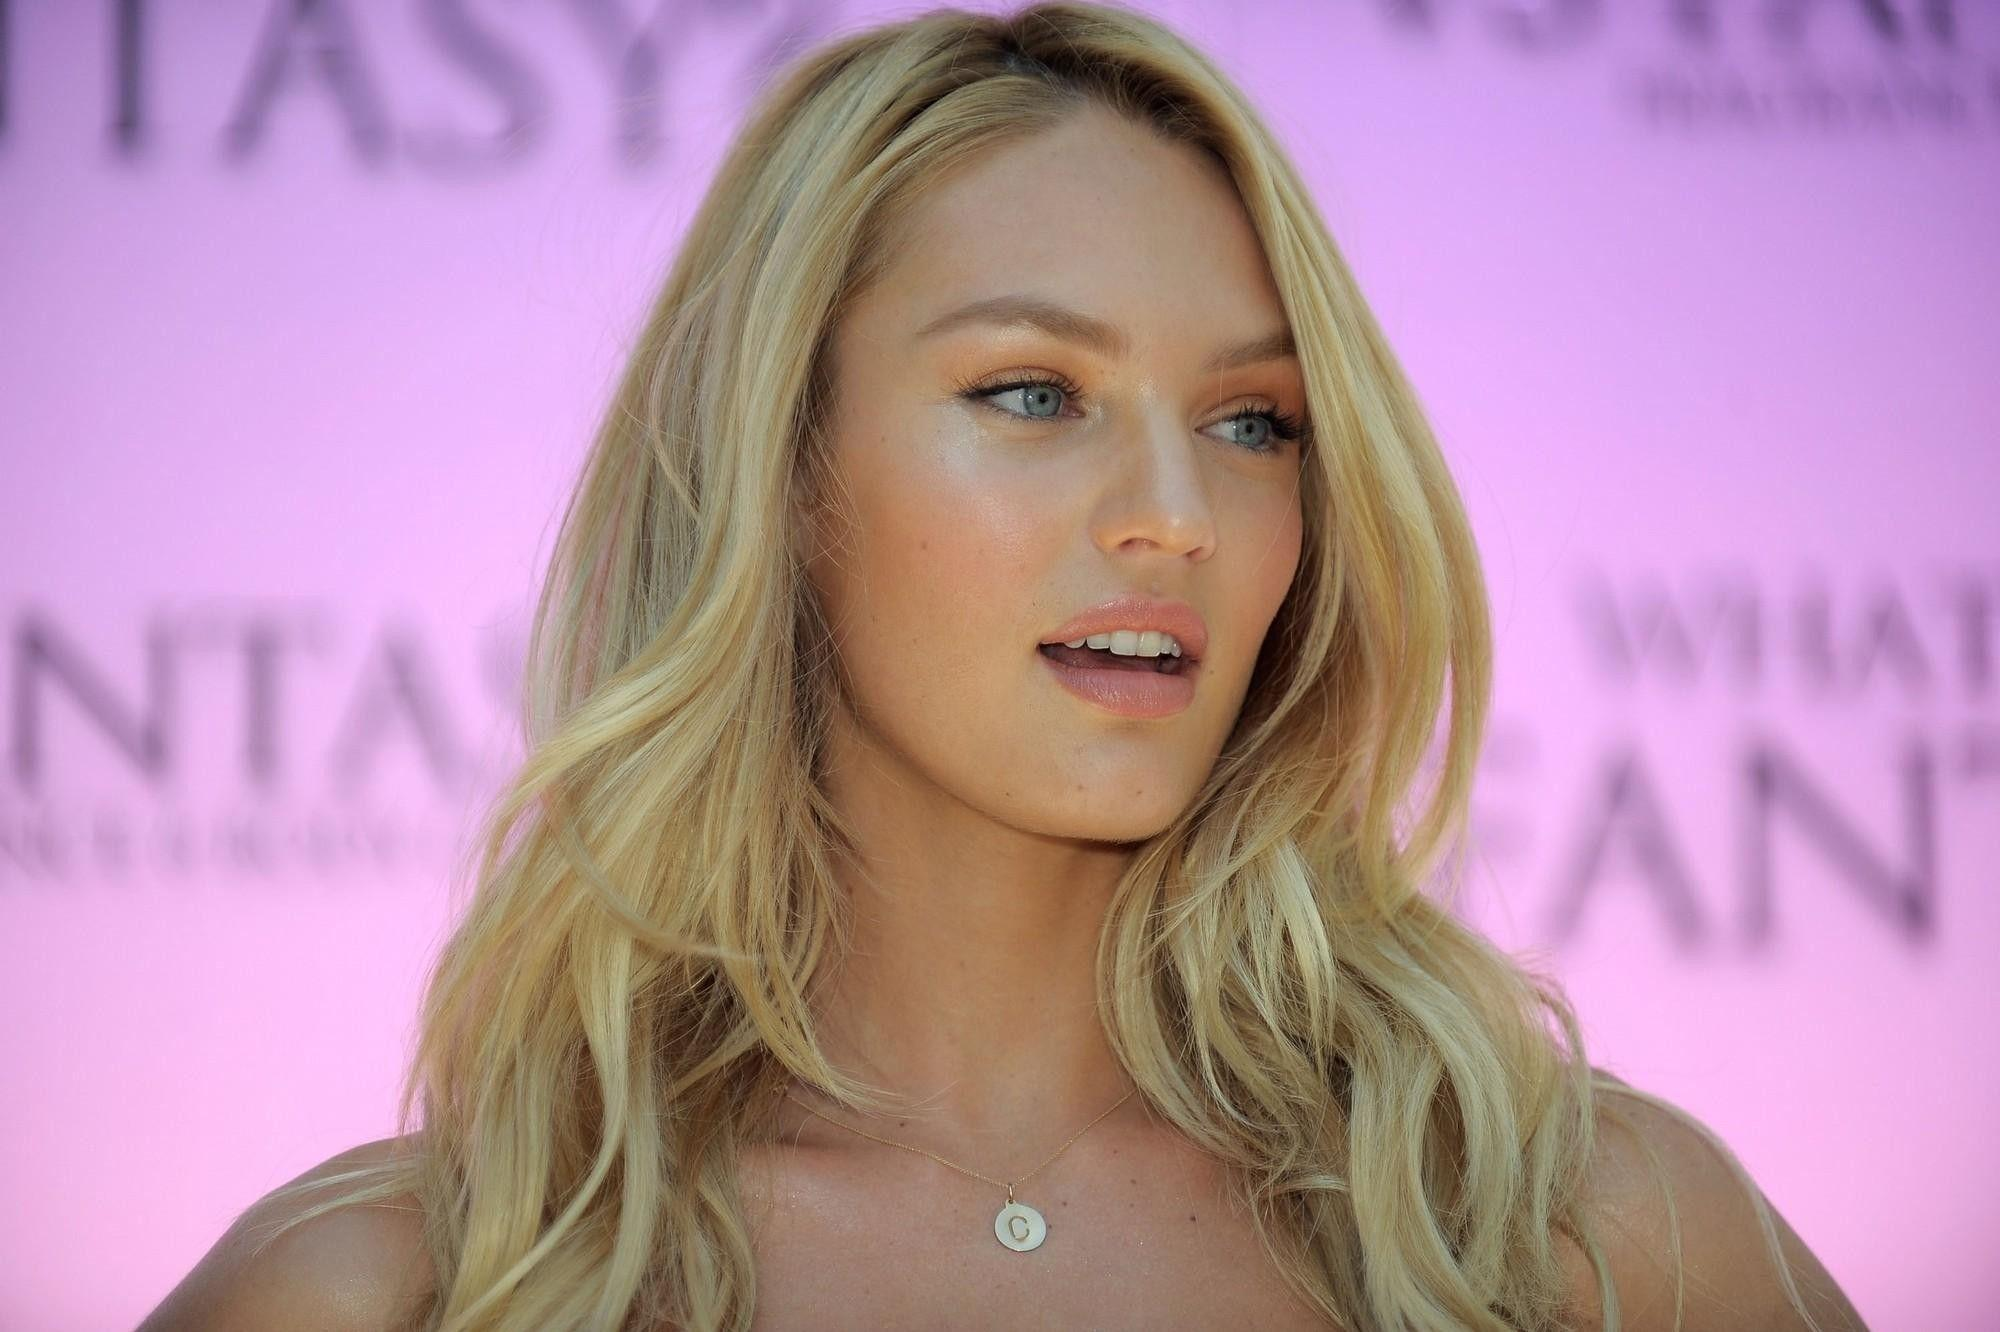 Candice Swanepoel Computer Wallpapers, Desktop Backgrounds ...